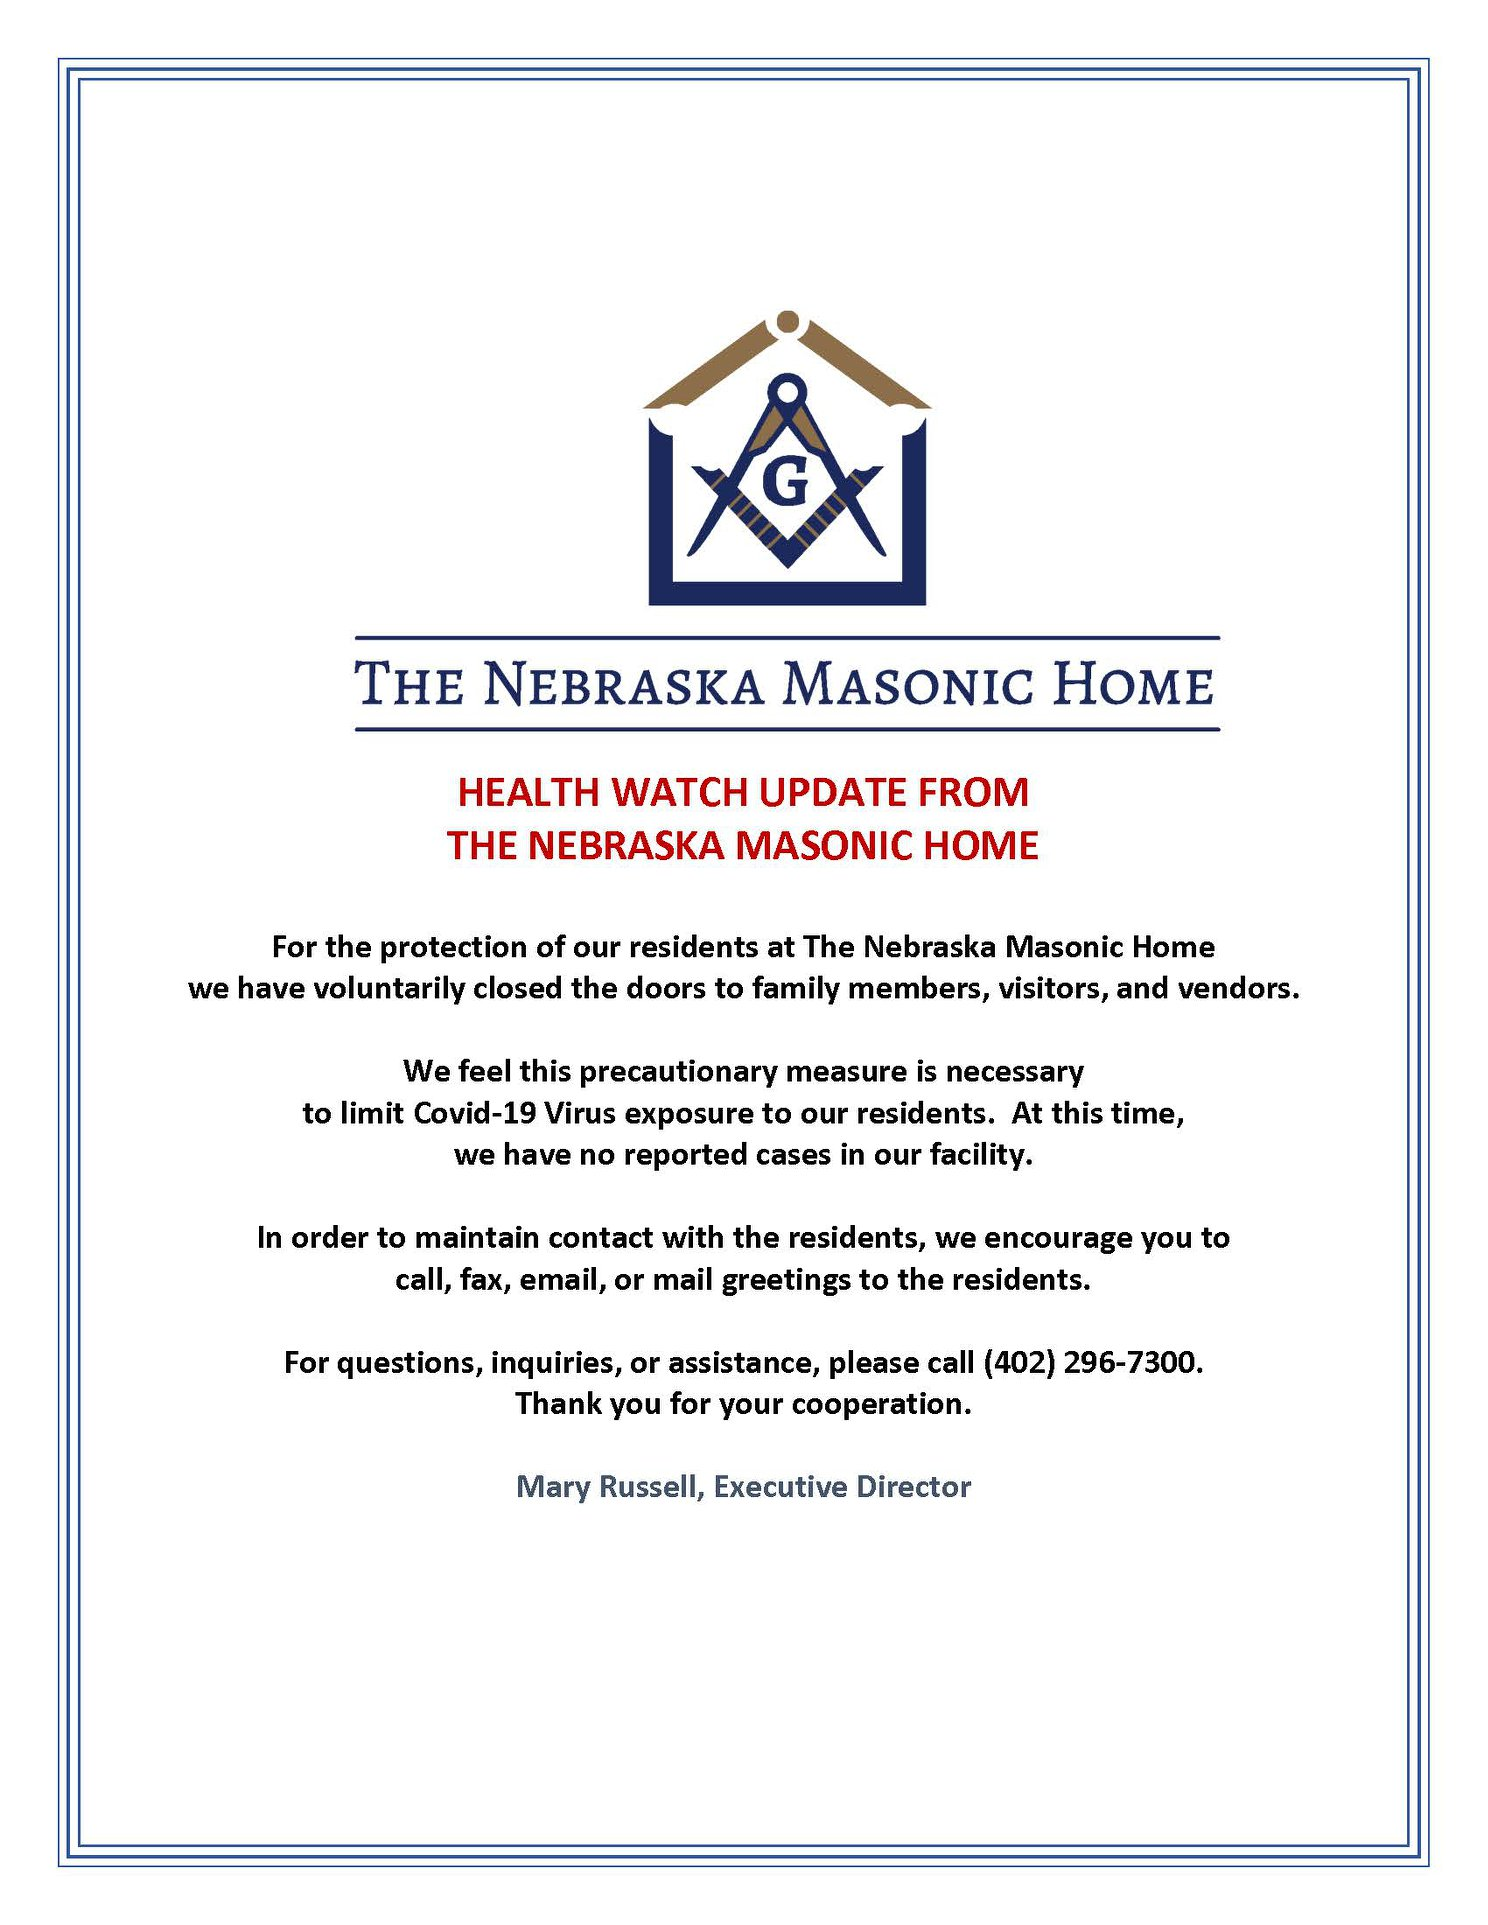 Masonic Home voluntary closed